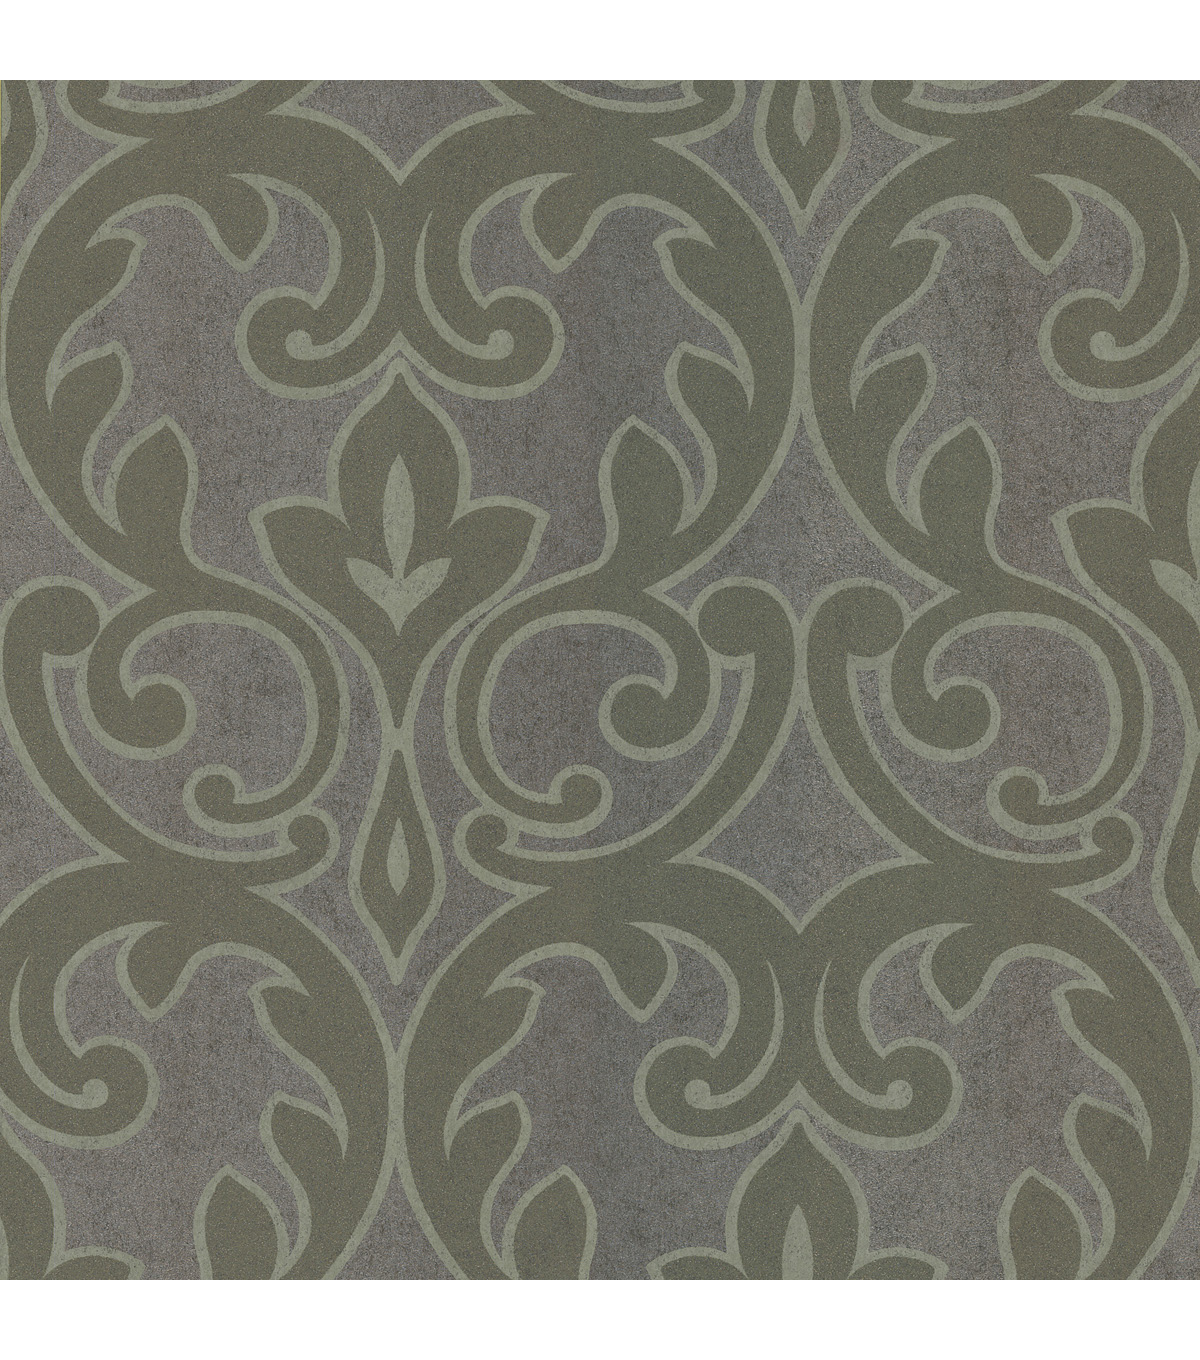 Dior Grey French Damask Wallpaper